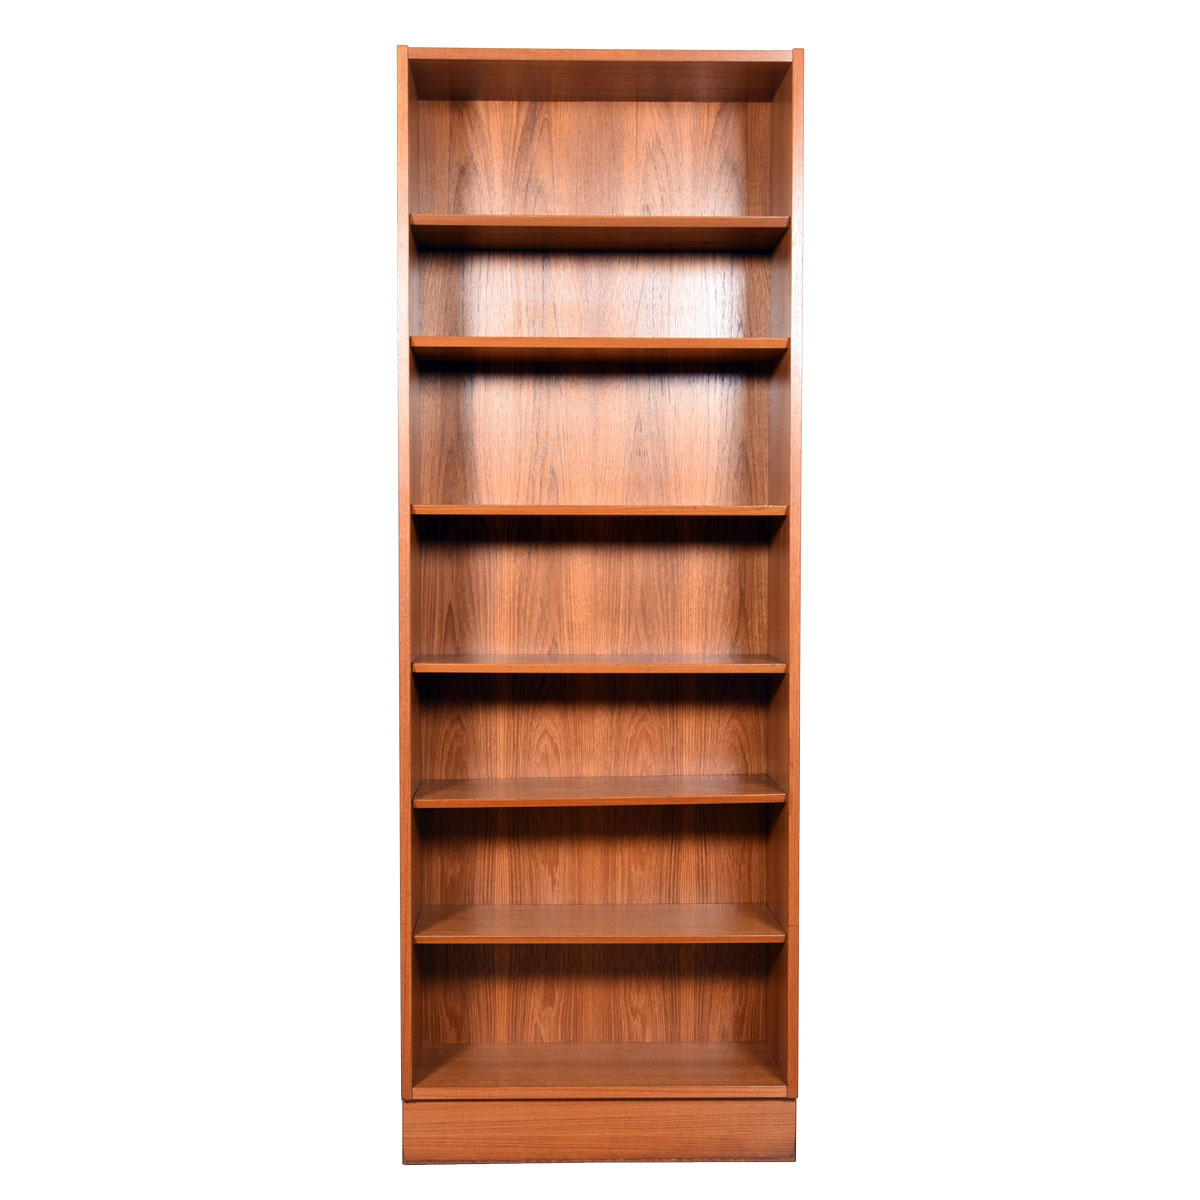 Slim Danish Teak Bookcase with Adjustable Shelves